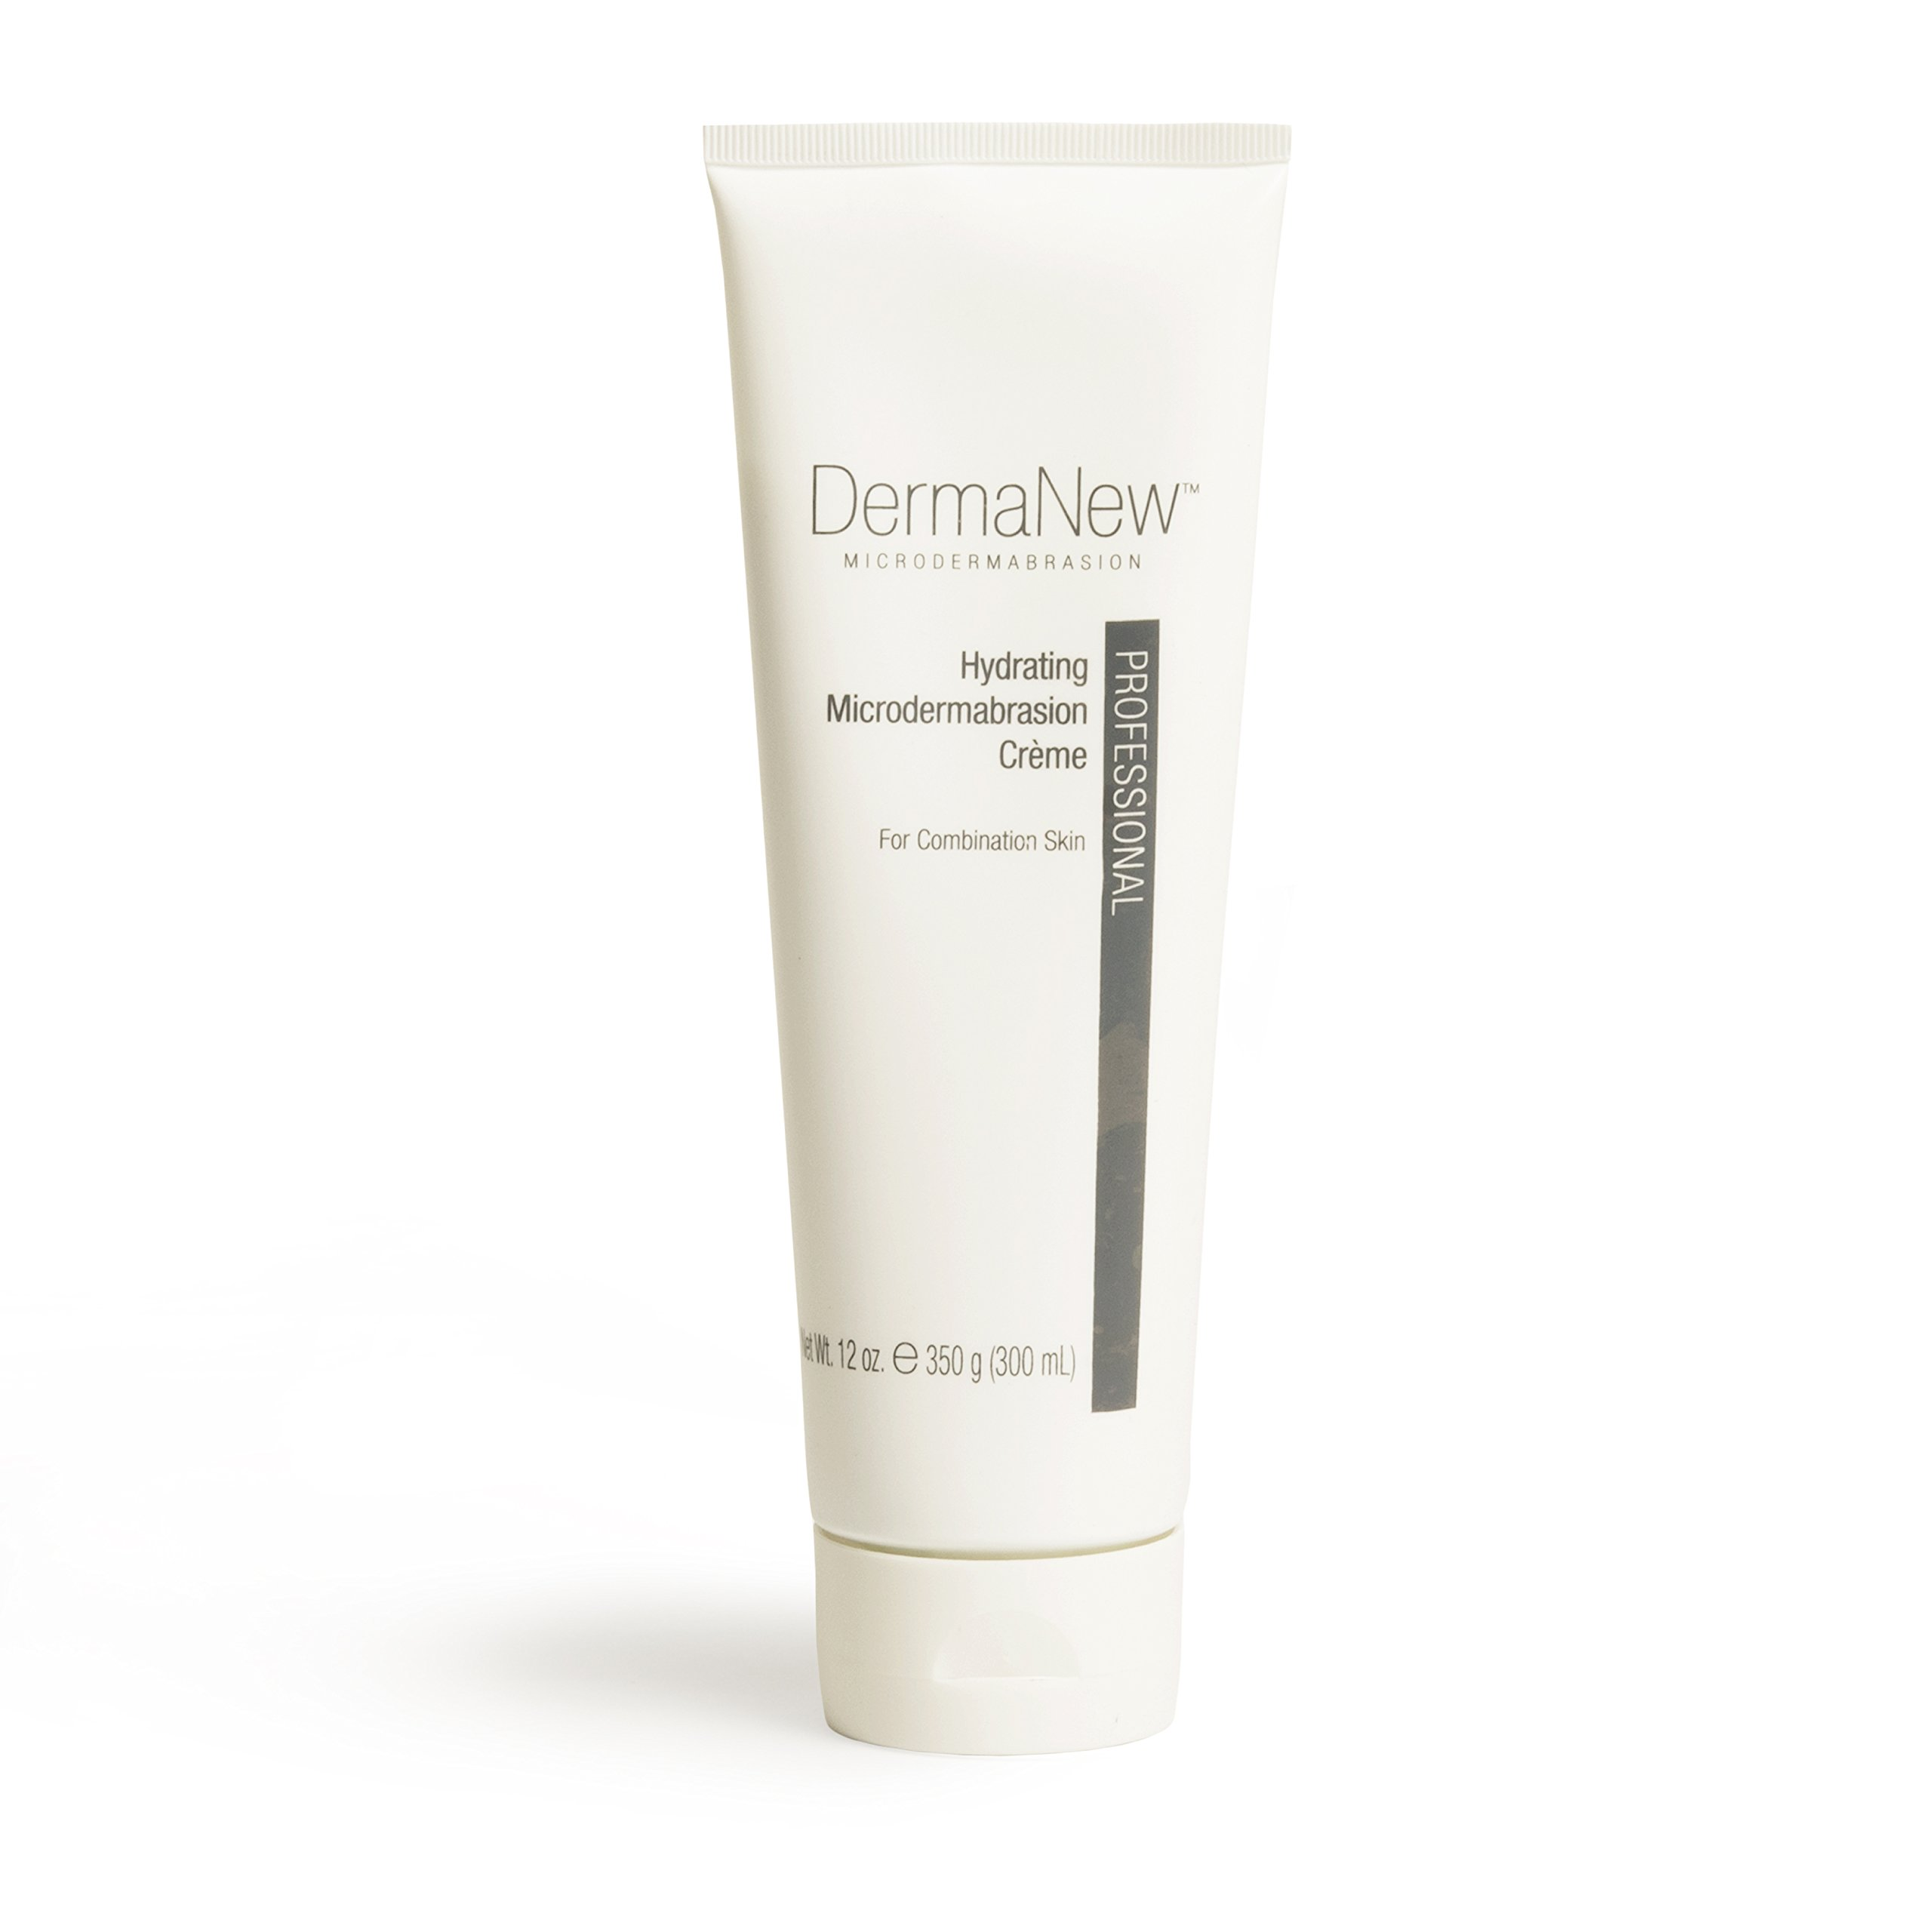 Hydrating MicroDermabrasion Cream Professional Size (12 oz) by DermaNew MicroDermabrasion PERFECT GIFT!